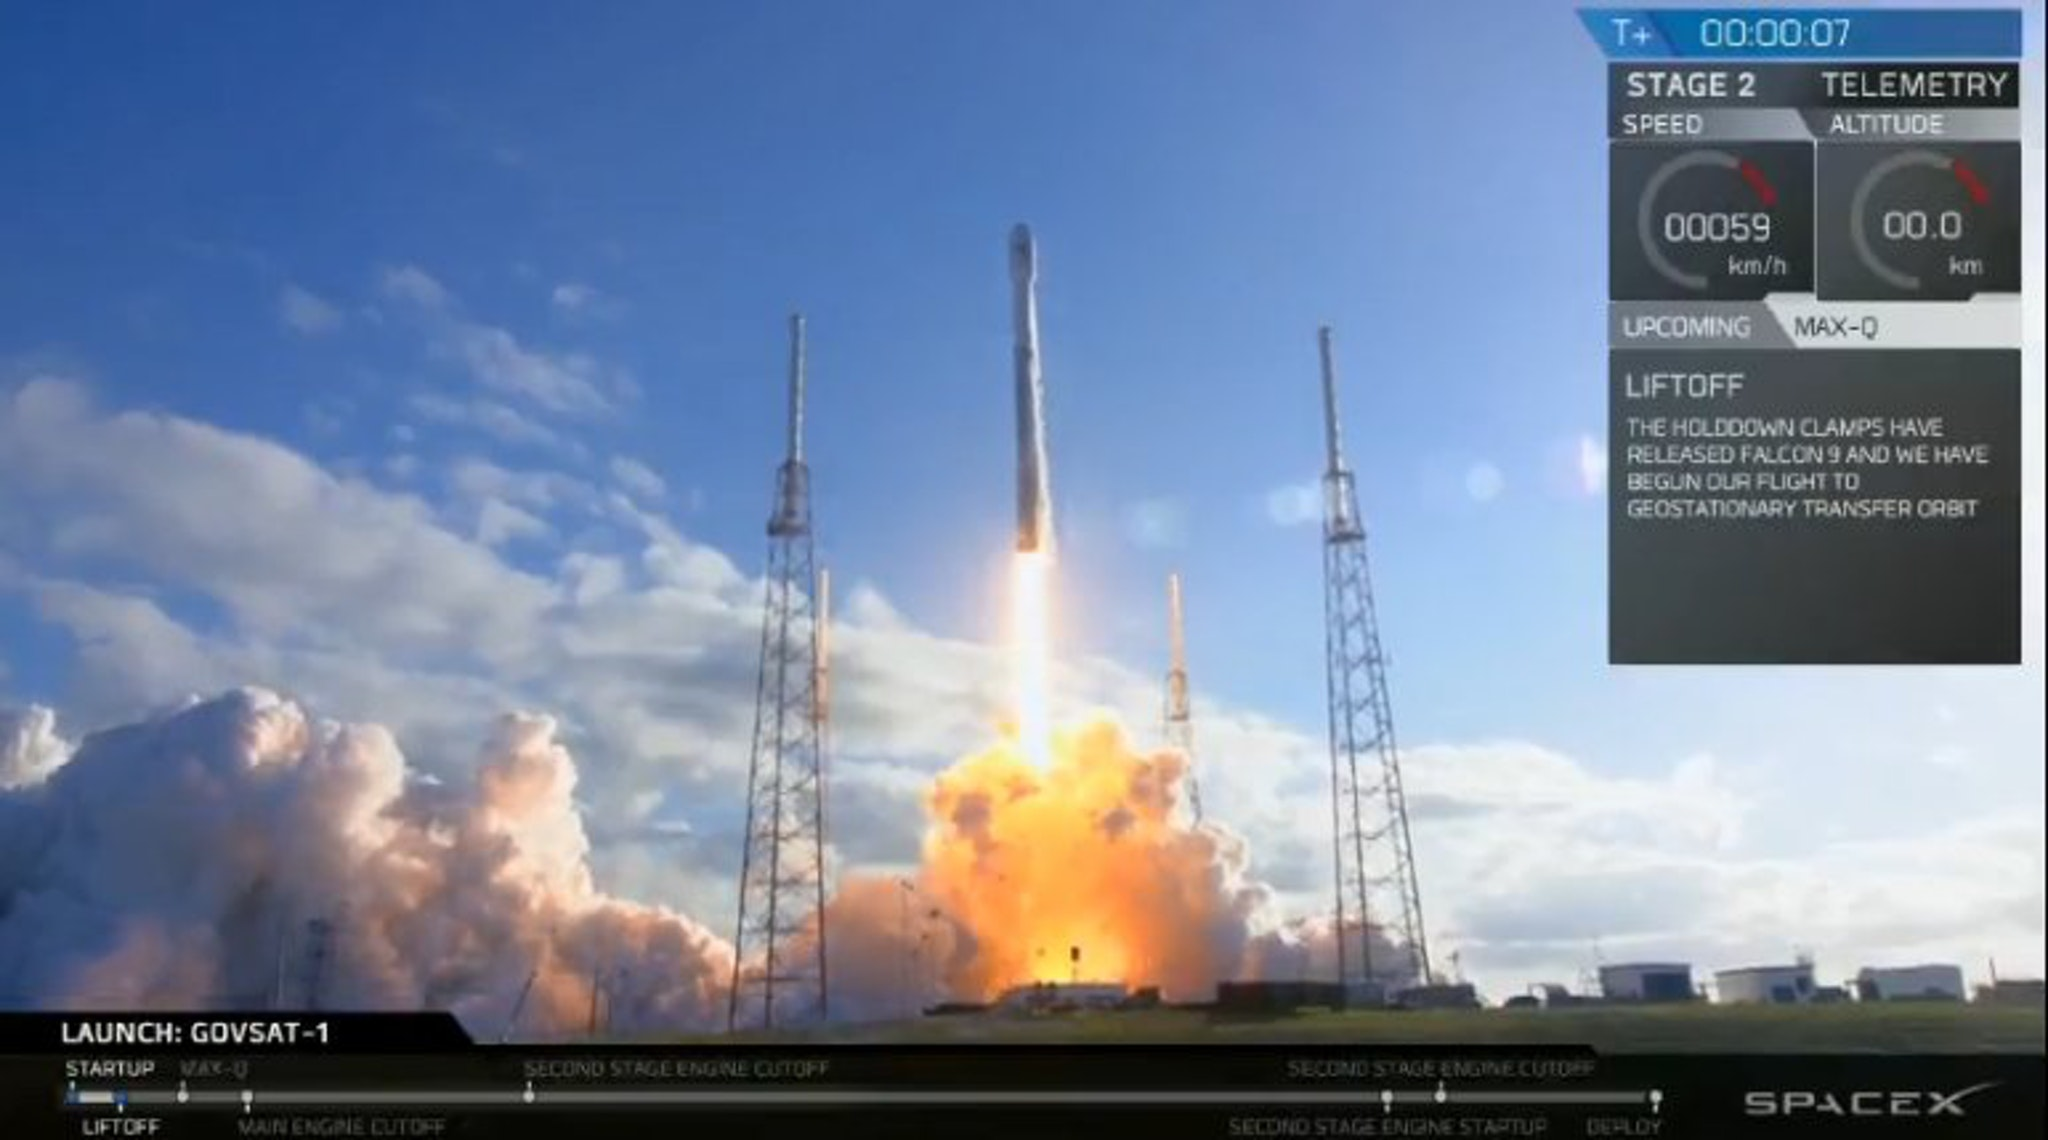 SpaceX & Luxembourg Launch New GovSat1 Satellite